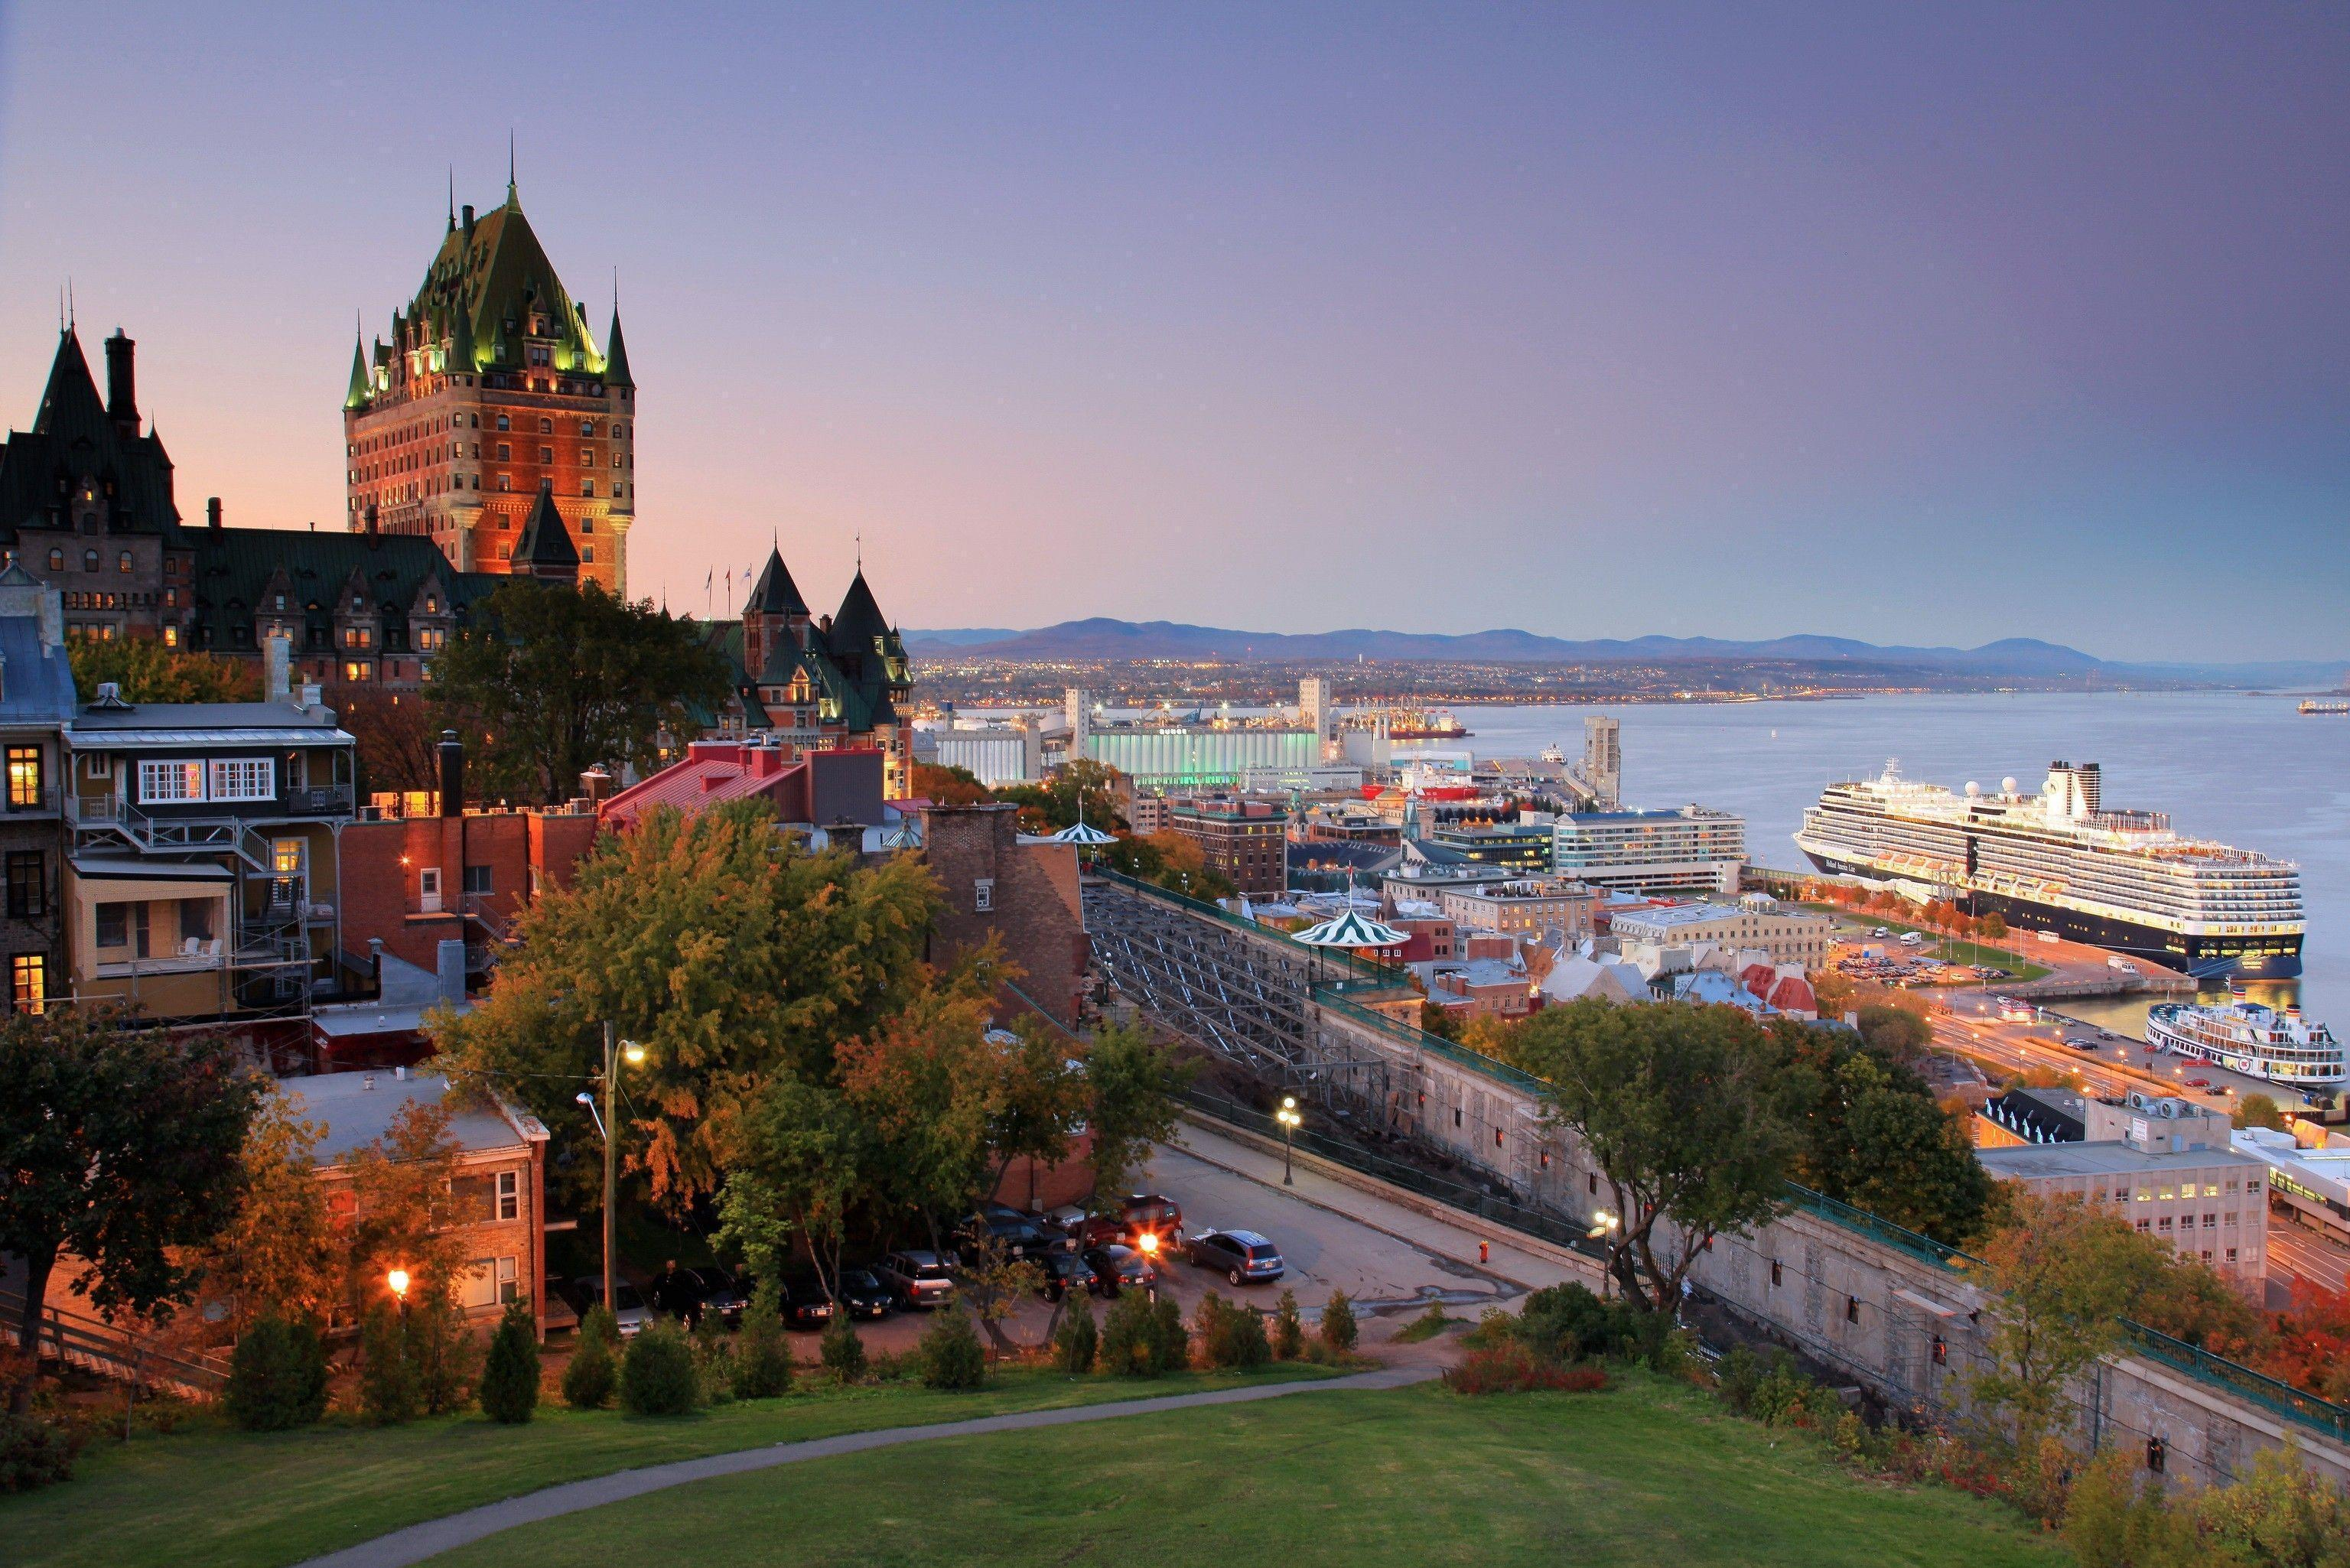 7 Quebec HD Wallpapers | Backgrounds - Wallpaper Abyss